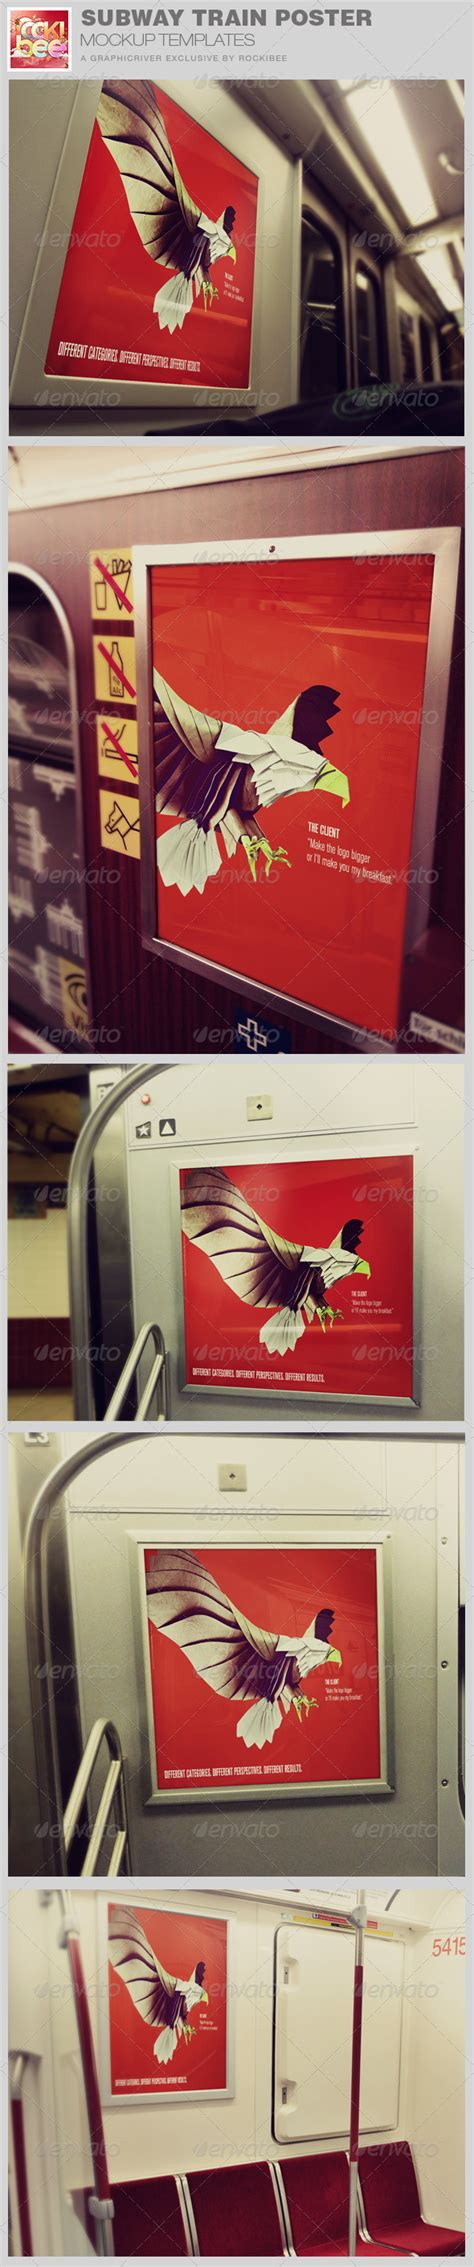 Subway Train Poster Mockup Templates By Rockibee Graphicriver Subway Poster Template